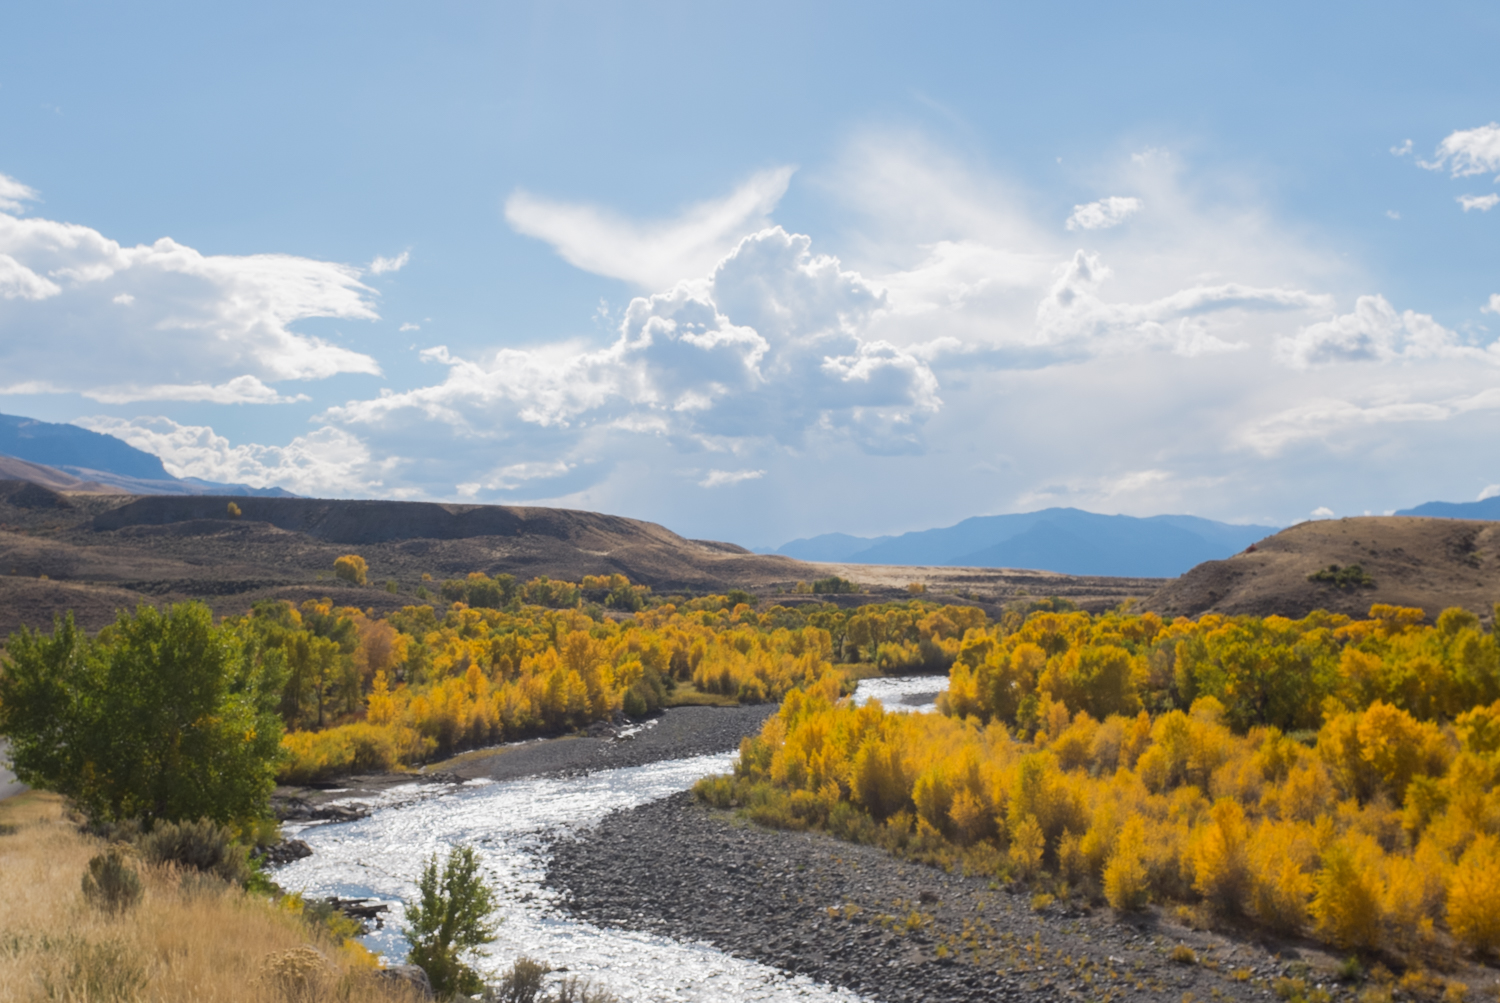 The South Fork of the Shoshone River near Cody, Wyoming.